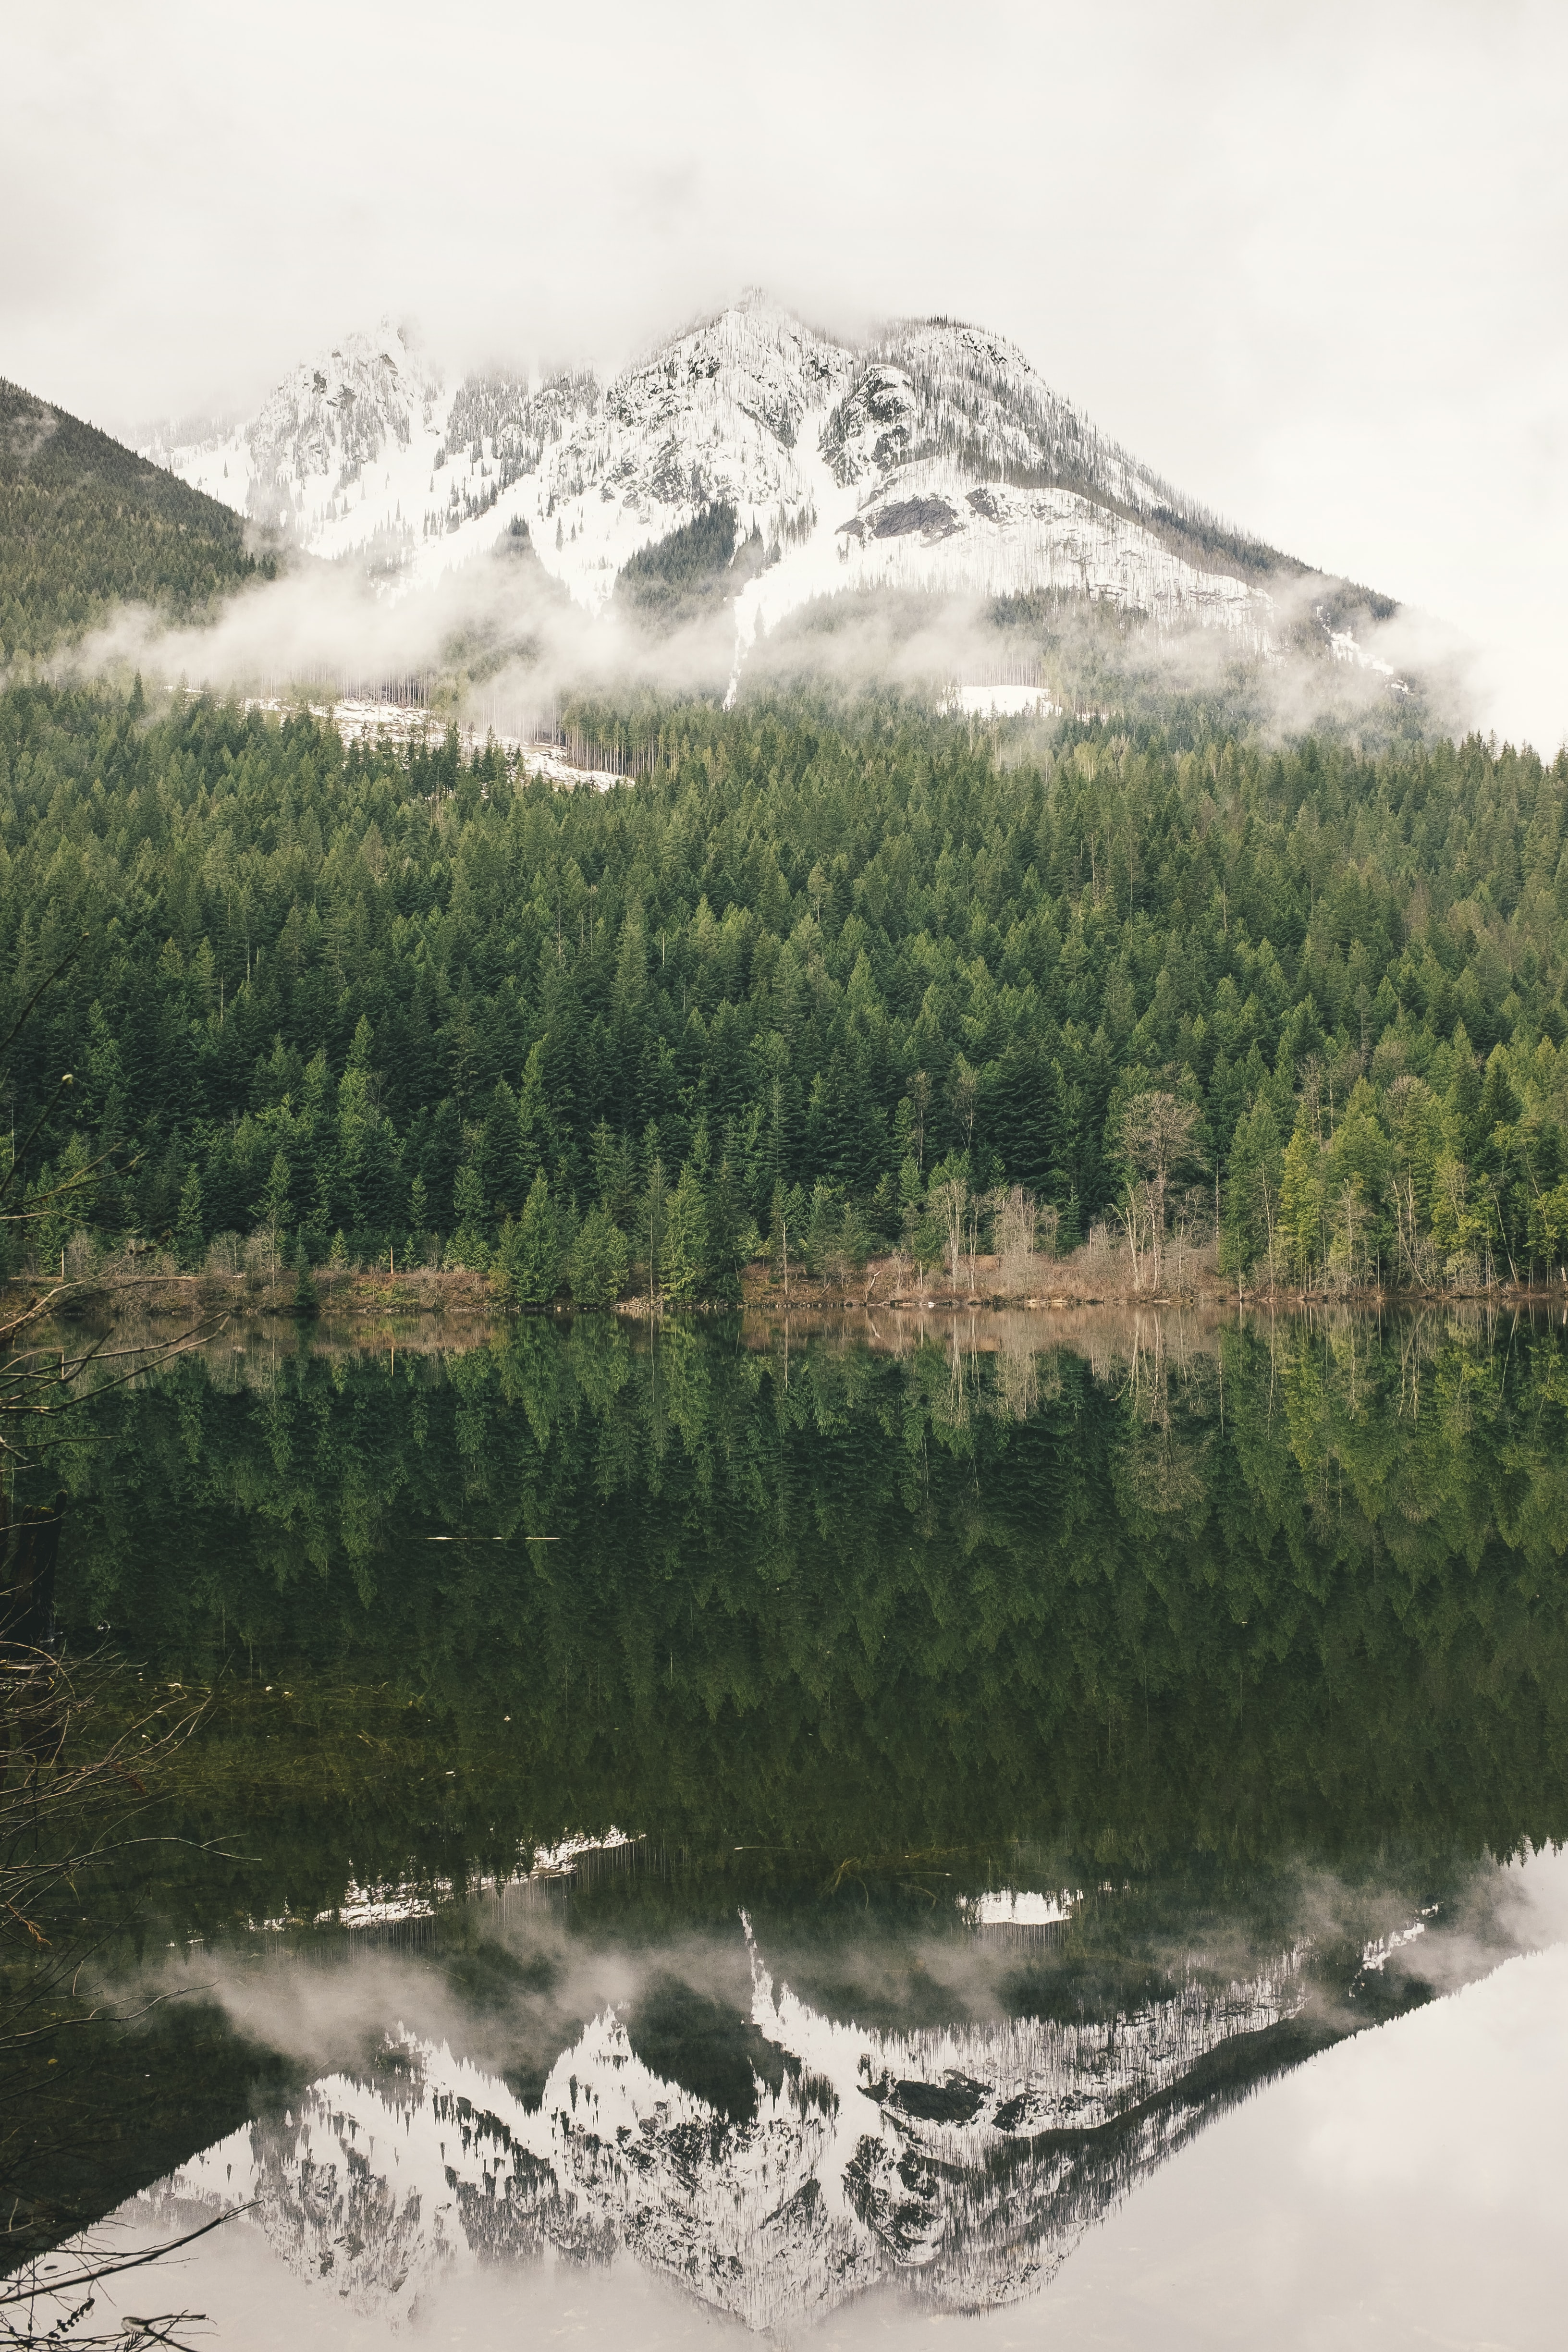 A snow-topped mountain reflected in the surface of a lake